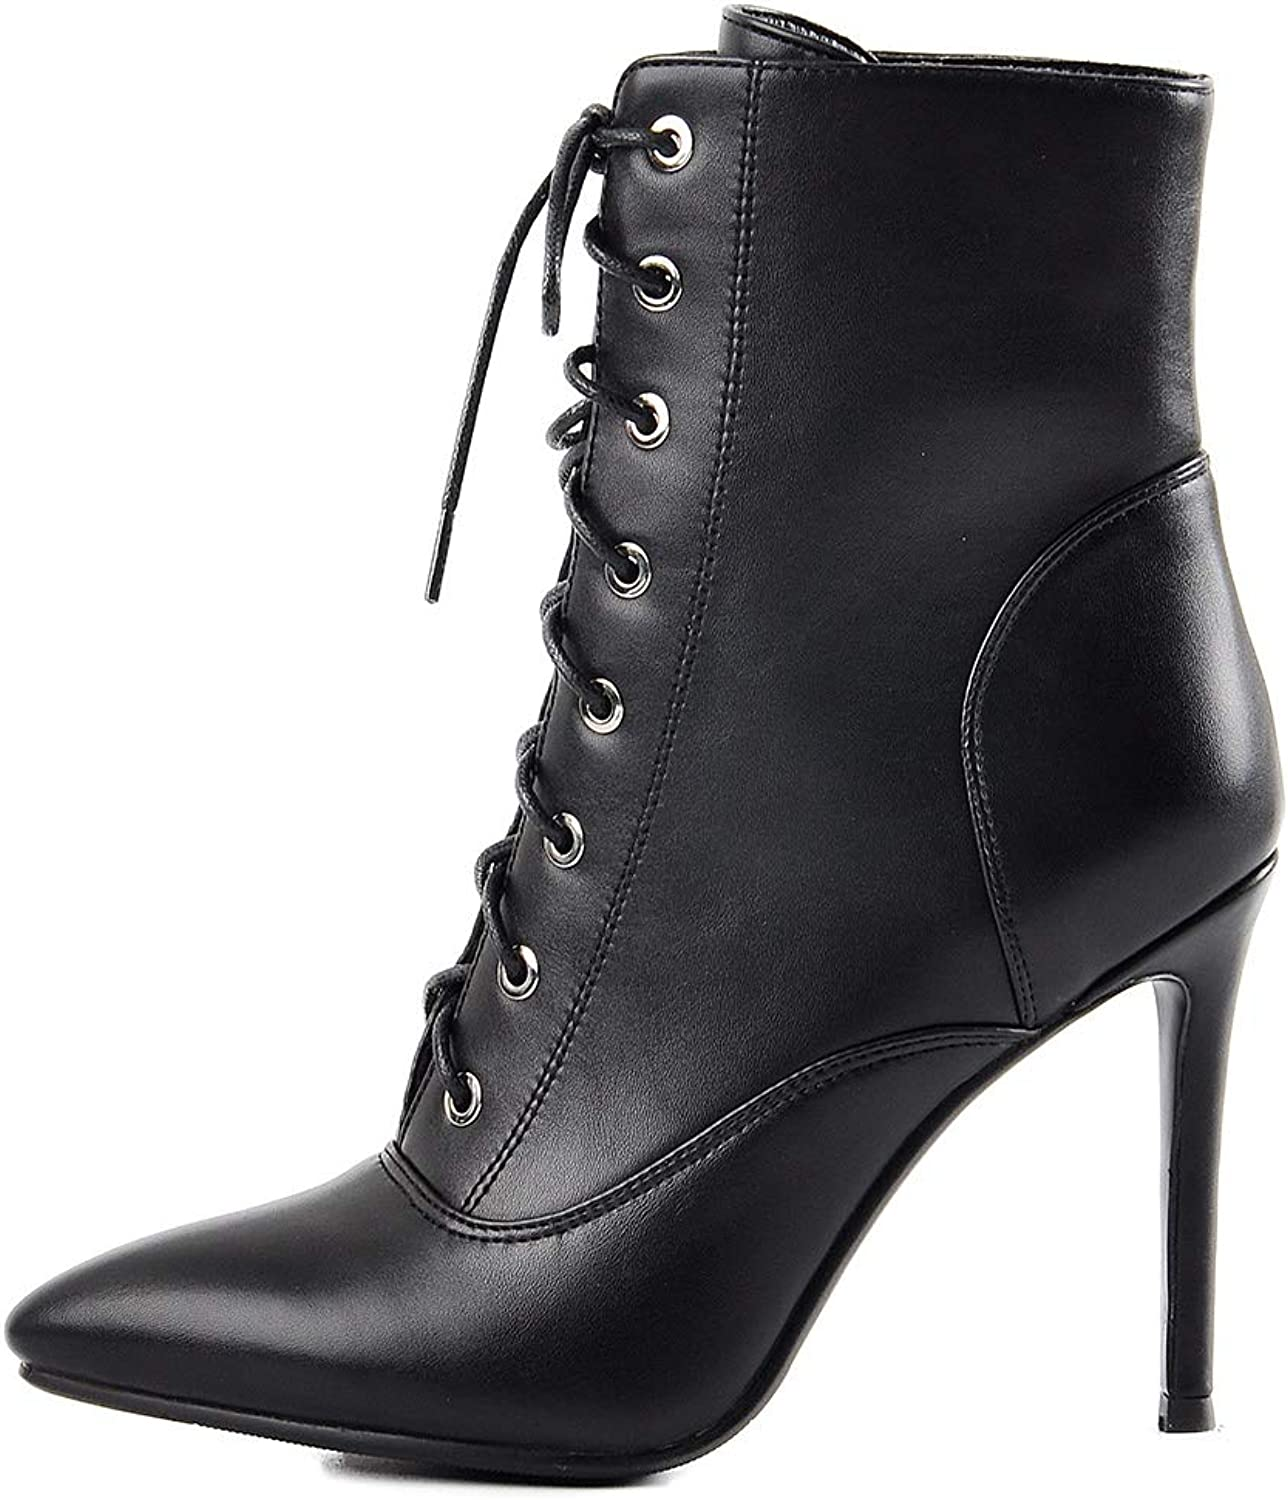 Onlymaker Women's Pointy Toe Lace up Ankle Booties Stiletto High Heel Boots